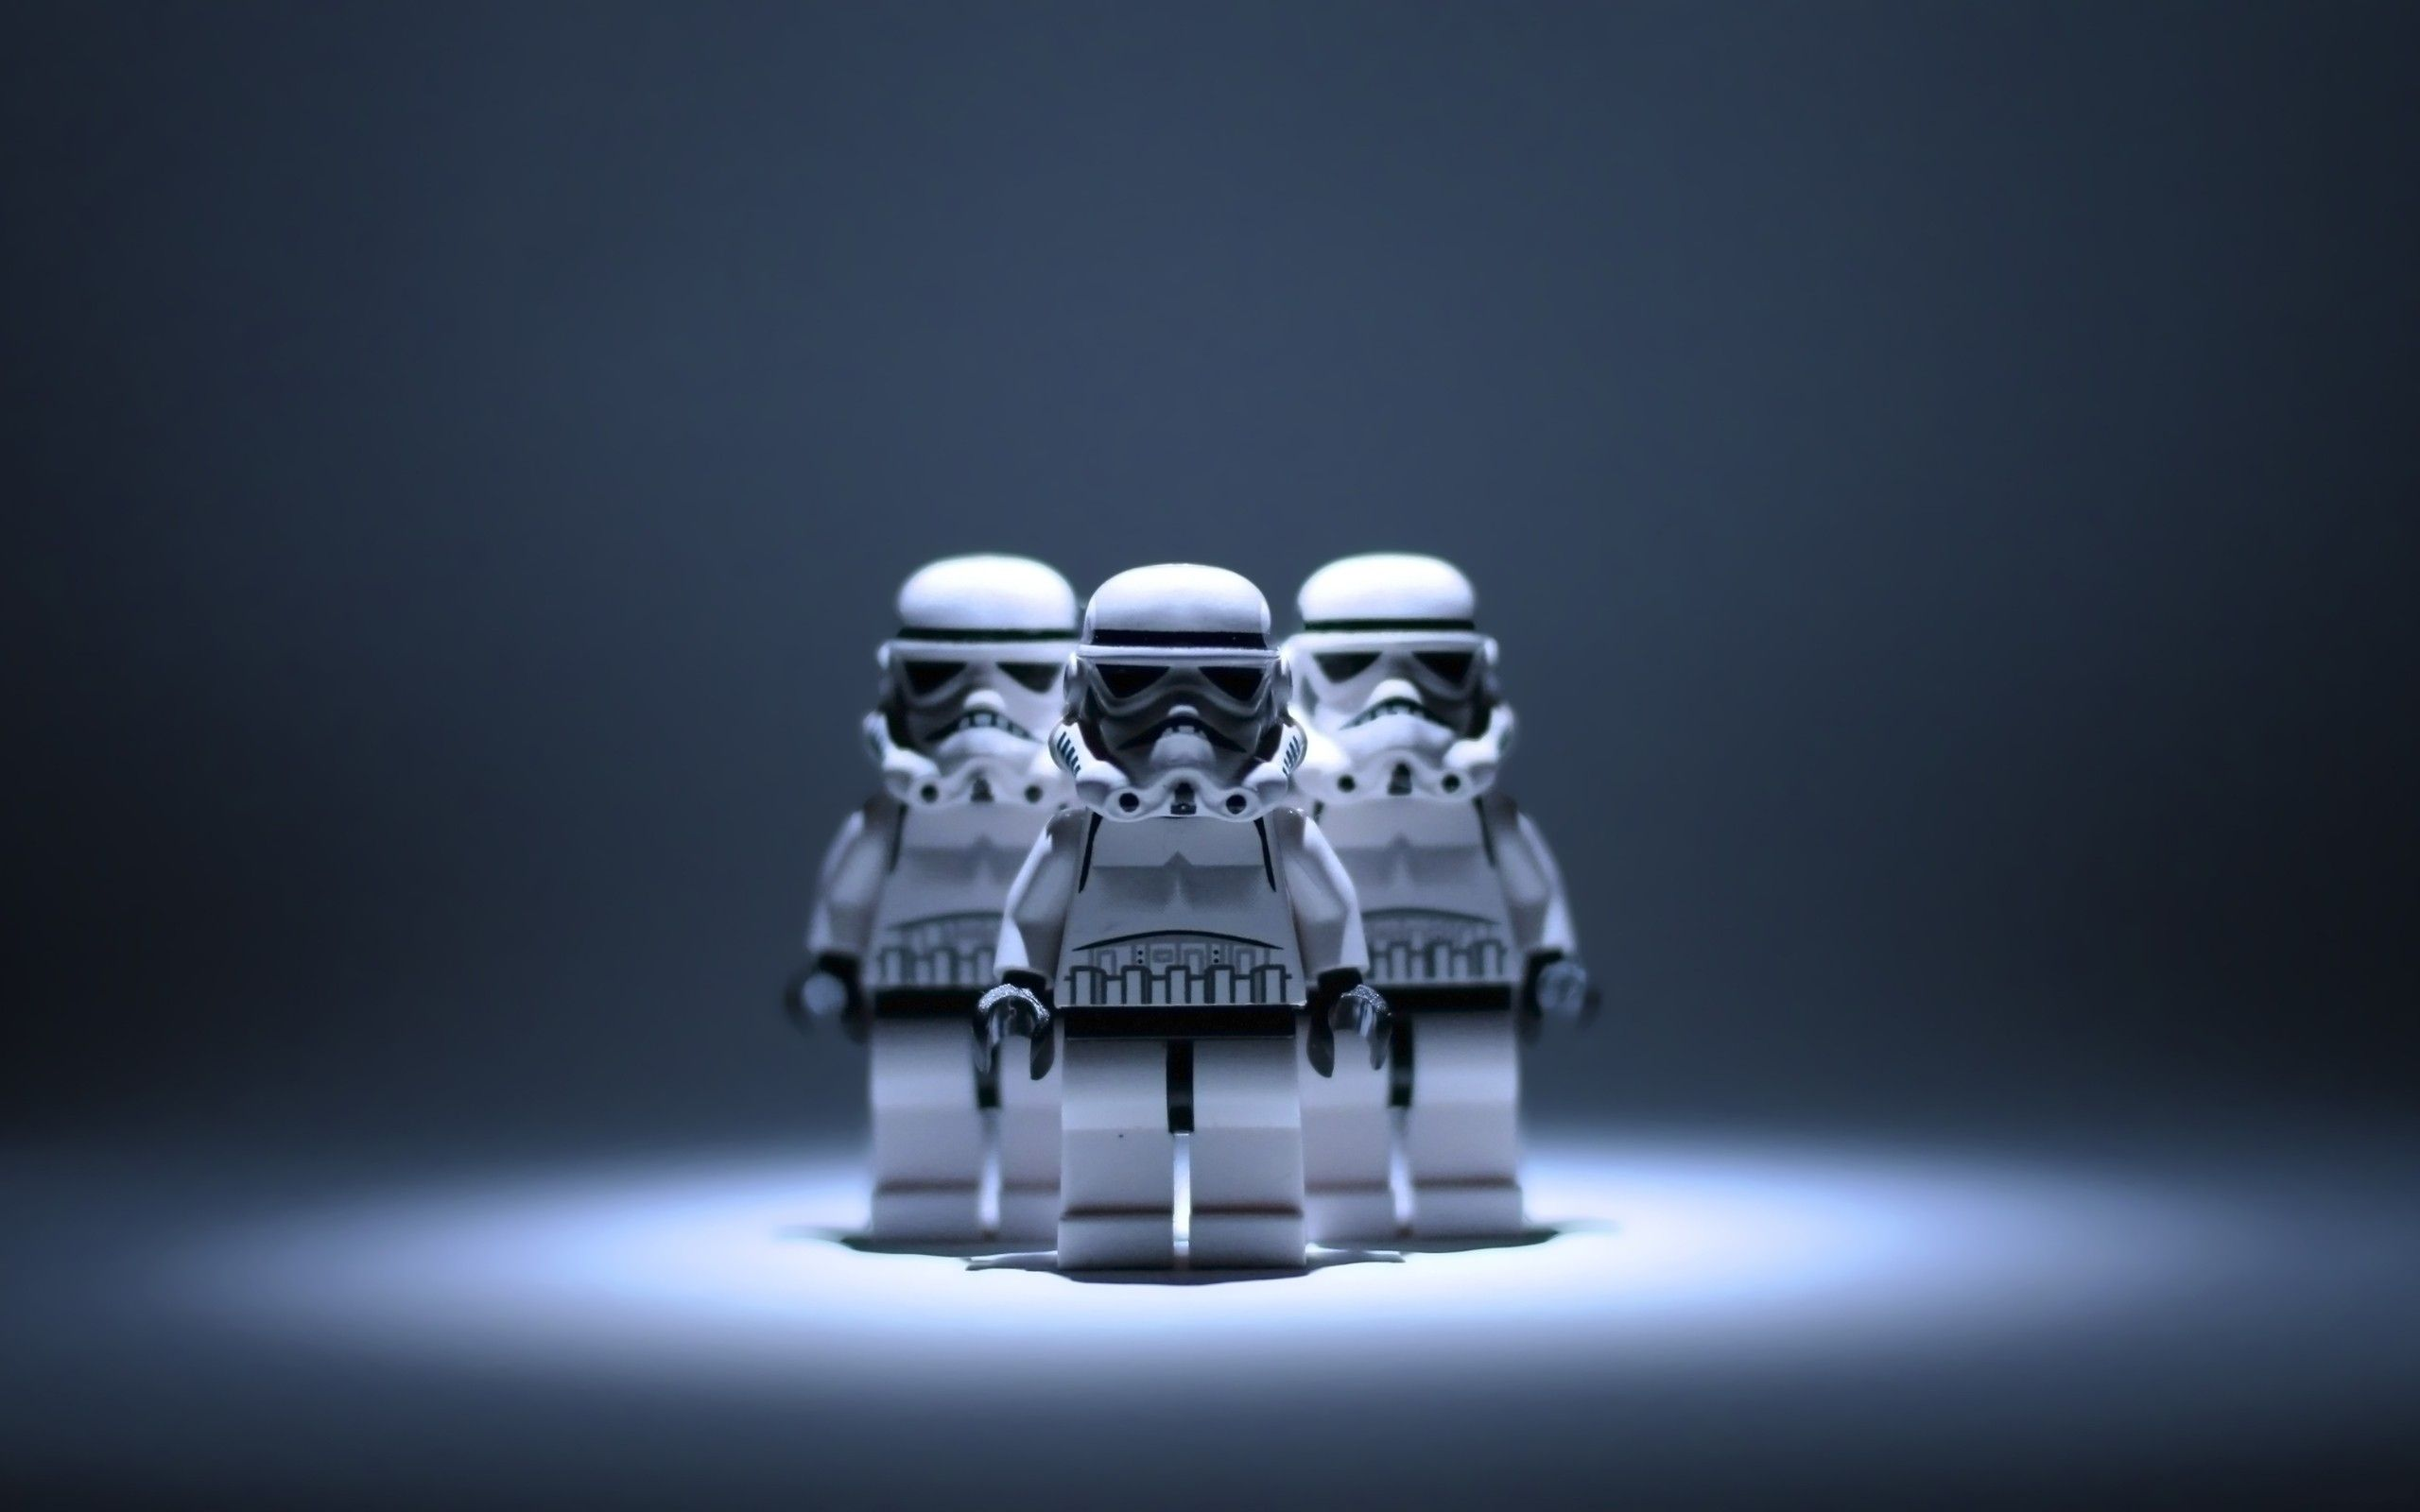 Star Wars Wallpaper Hd Star Wars Wallpaper Lego Wallpaper Lego Stormtrooper